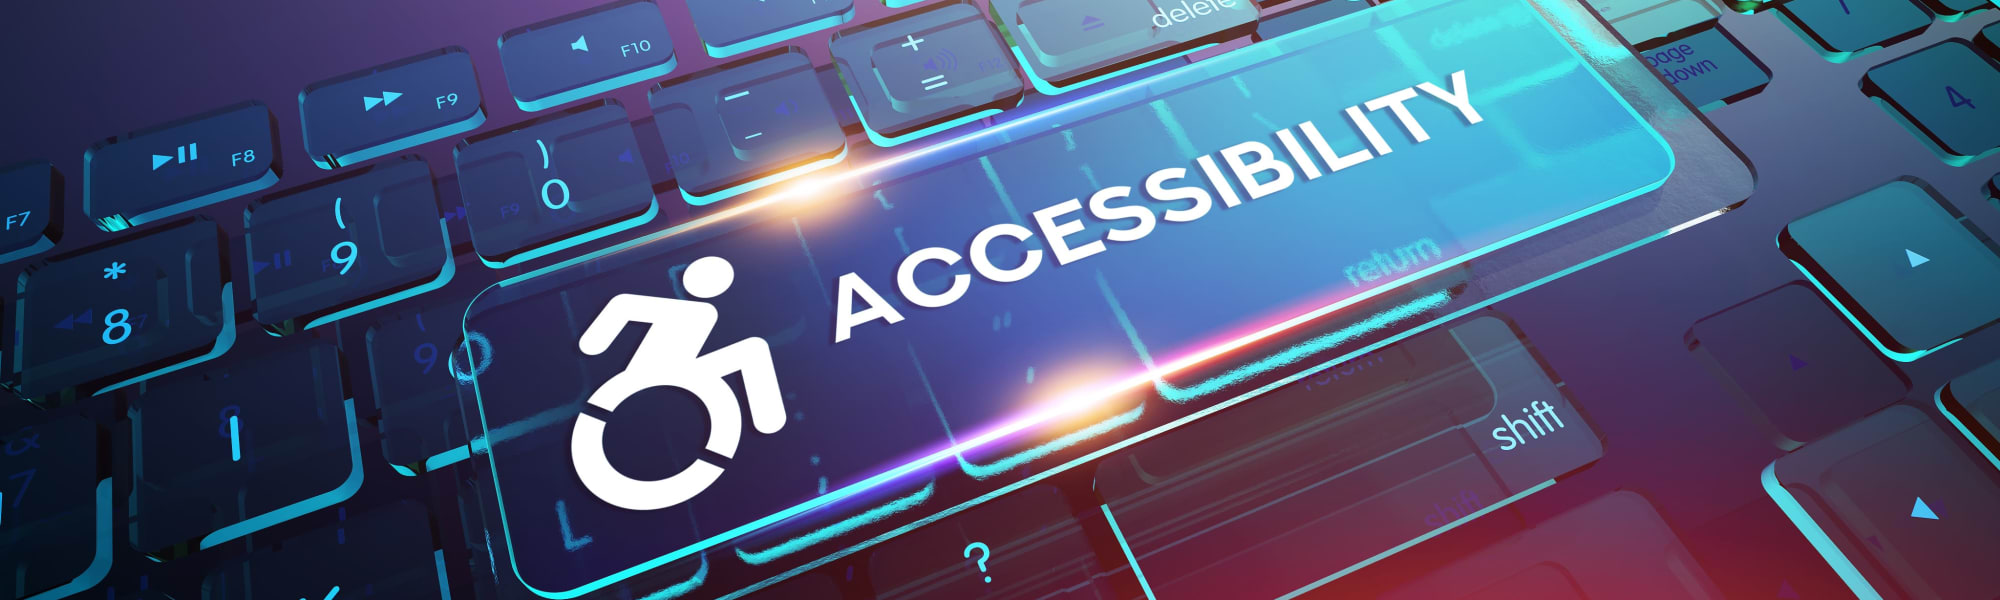 Accessibility policy for Sedona Ranch in Odessa, Texas